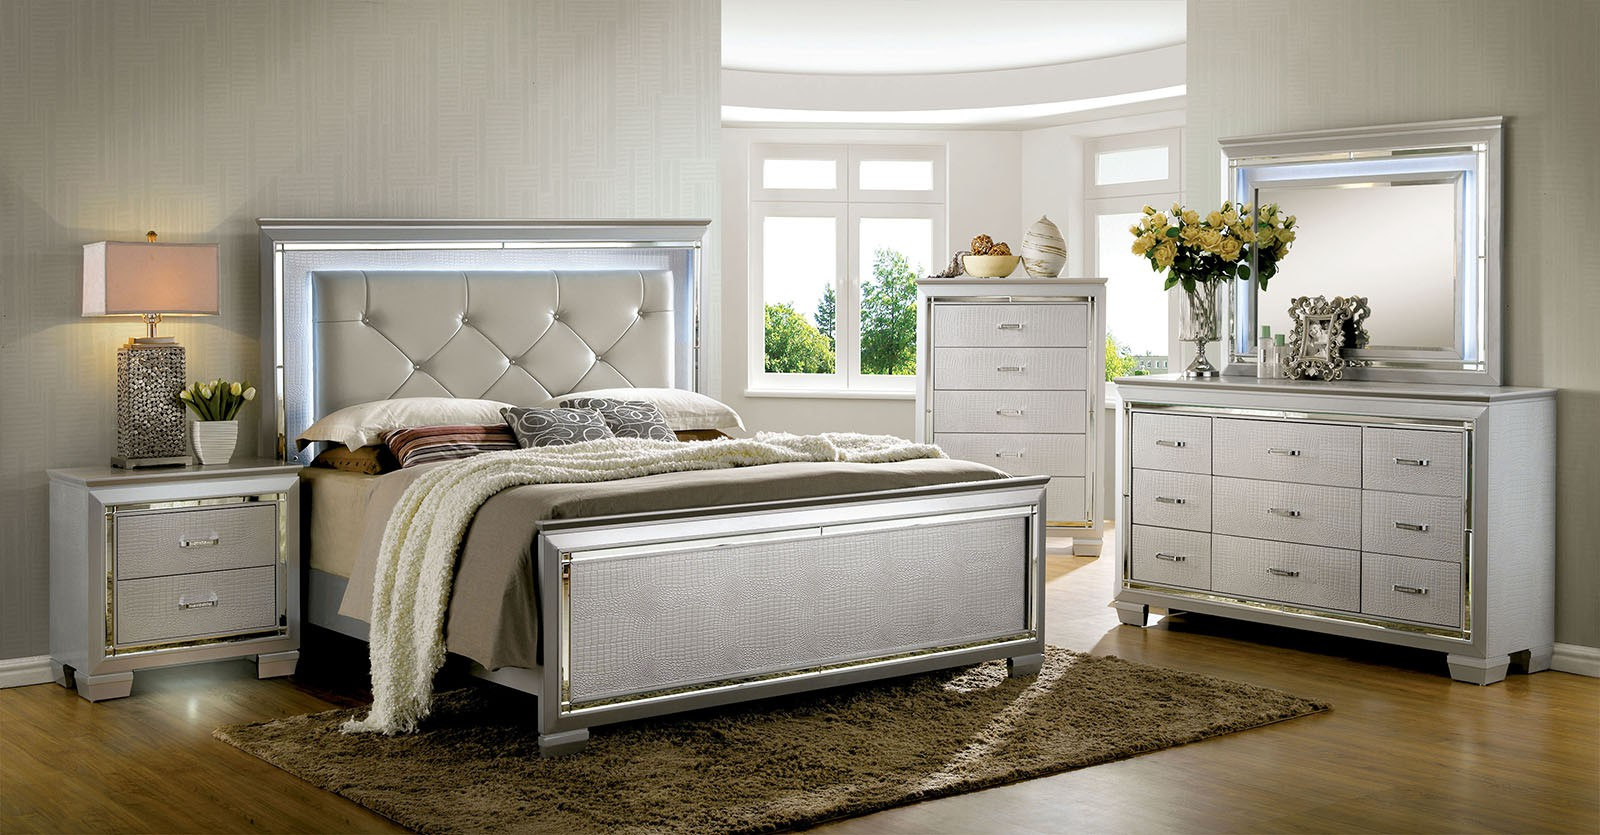 Lillian B7100 Bedroom Set